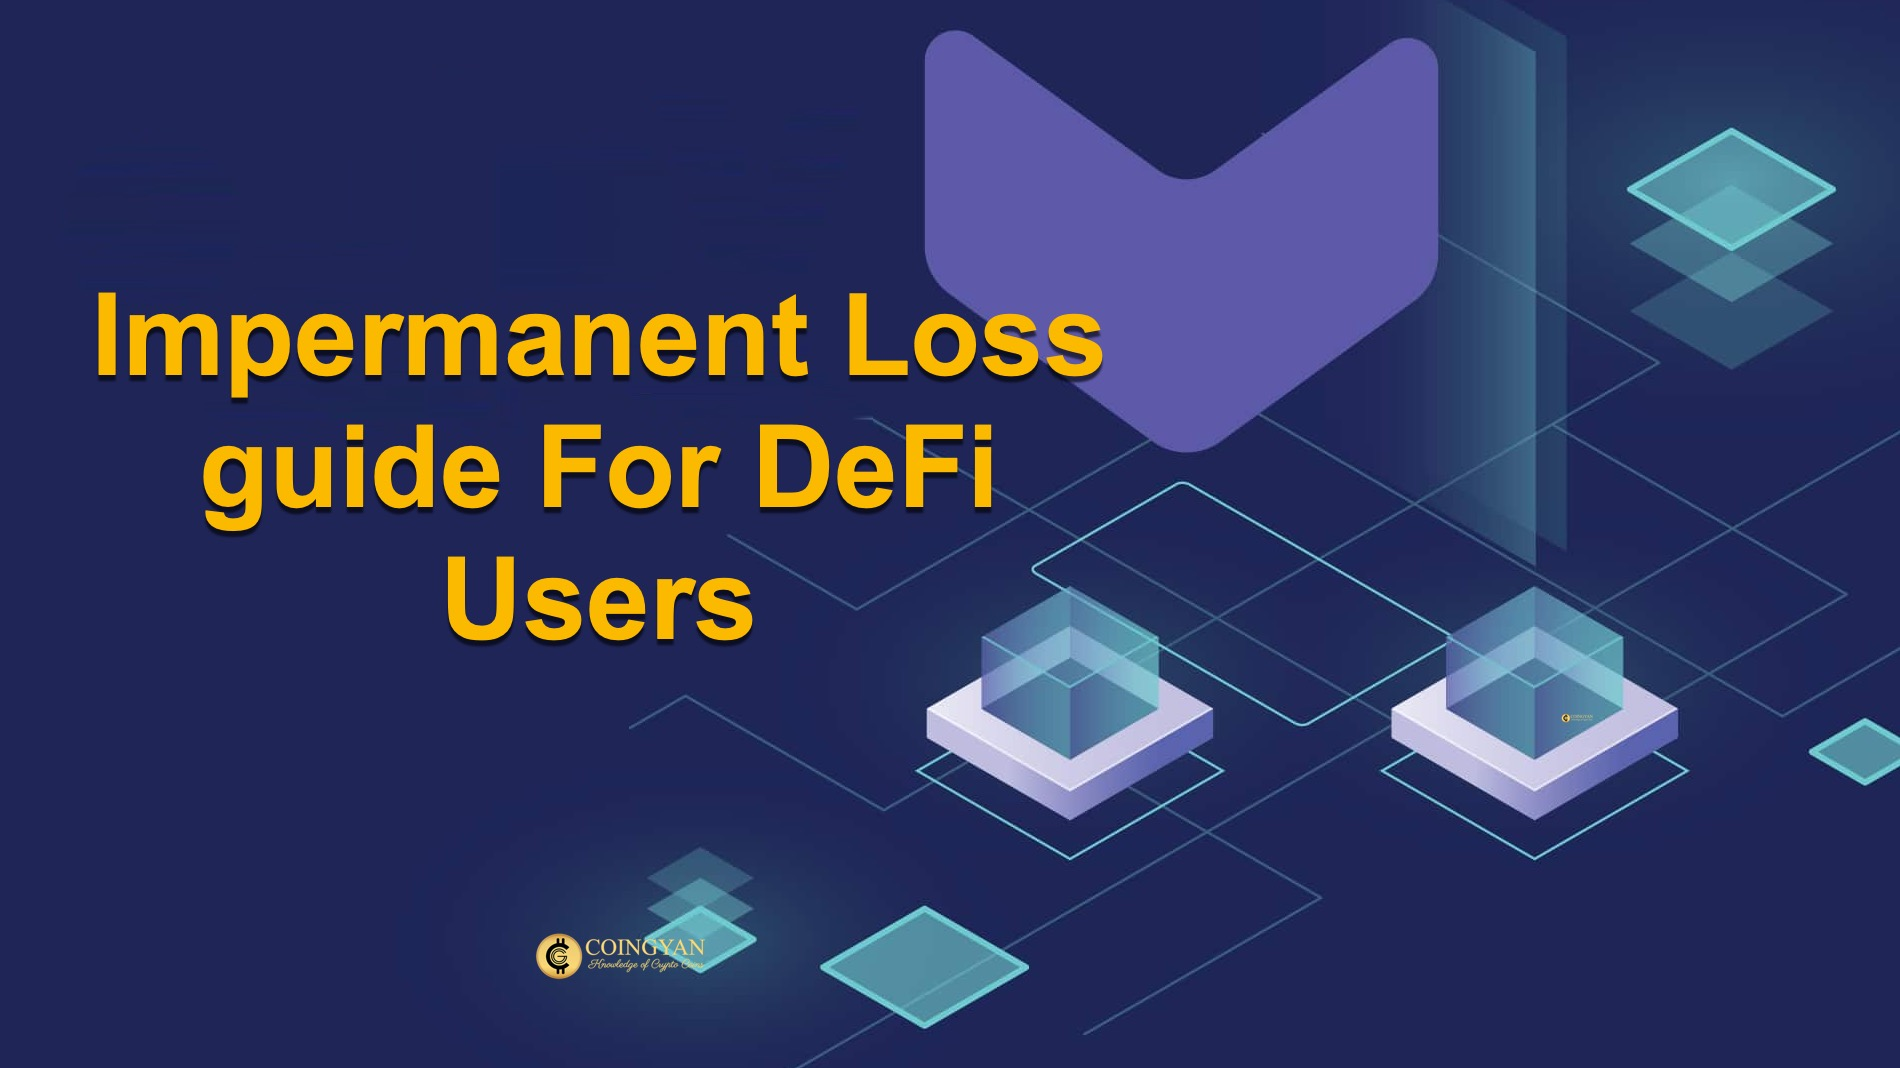 Impermanent Loss guide For DeFi Users - CoinGyan